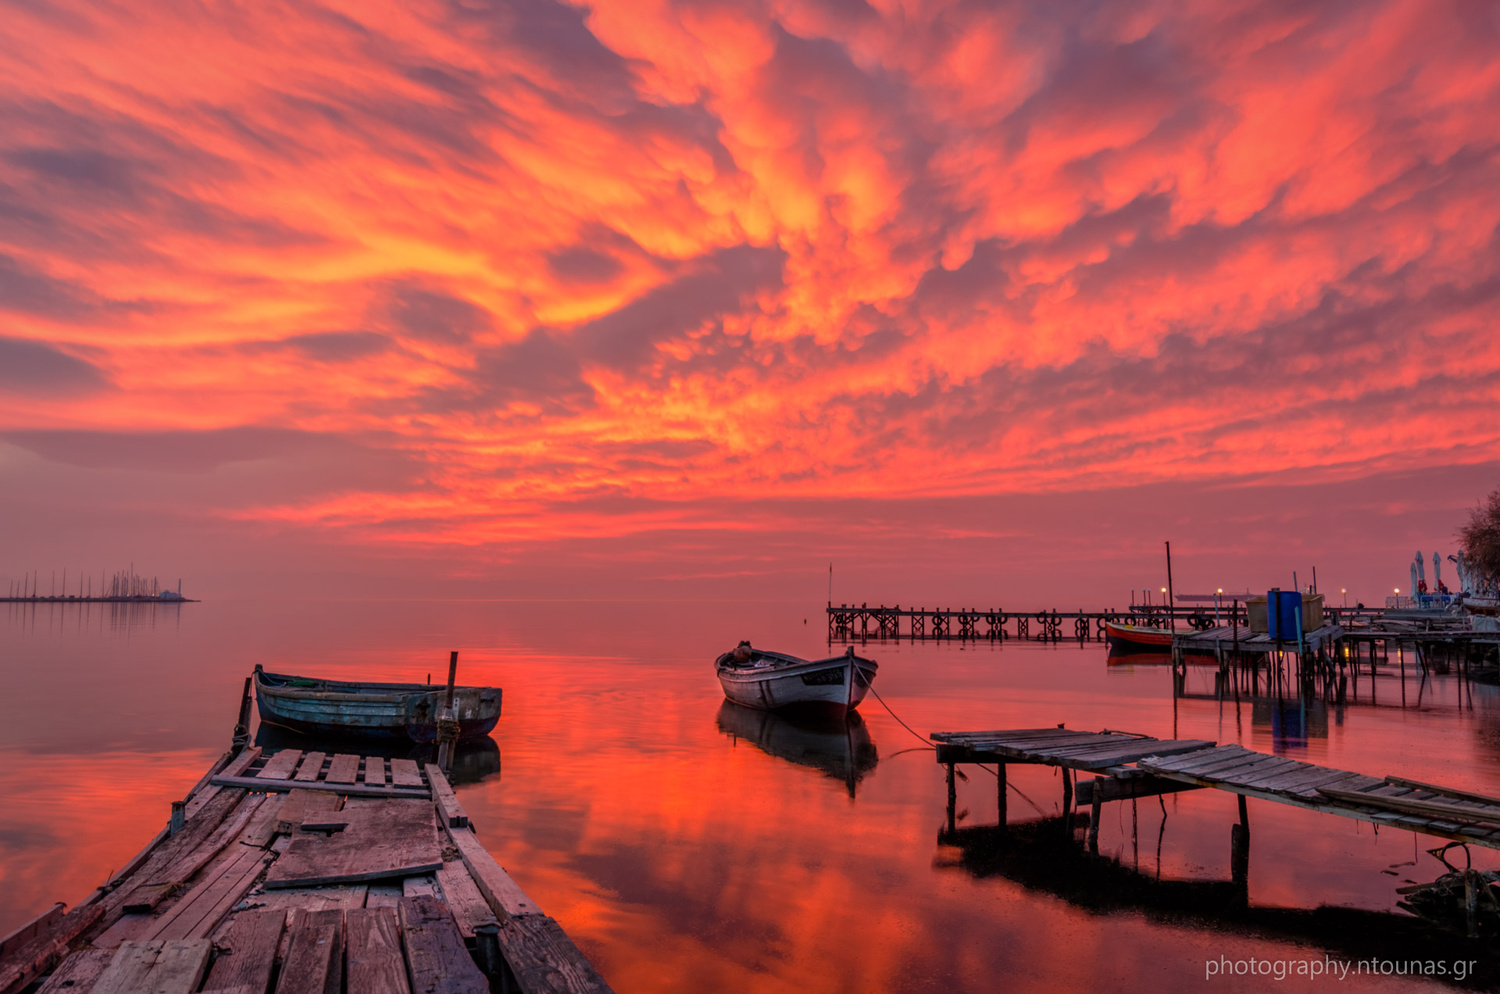 Burning Sky by Alexios Ntounas